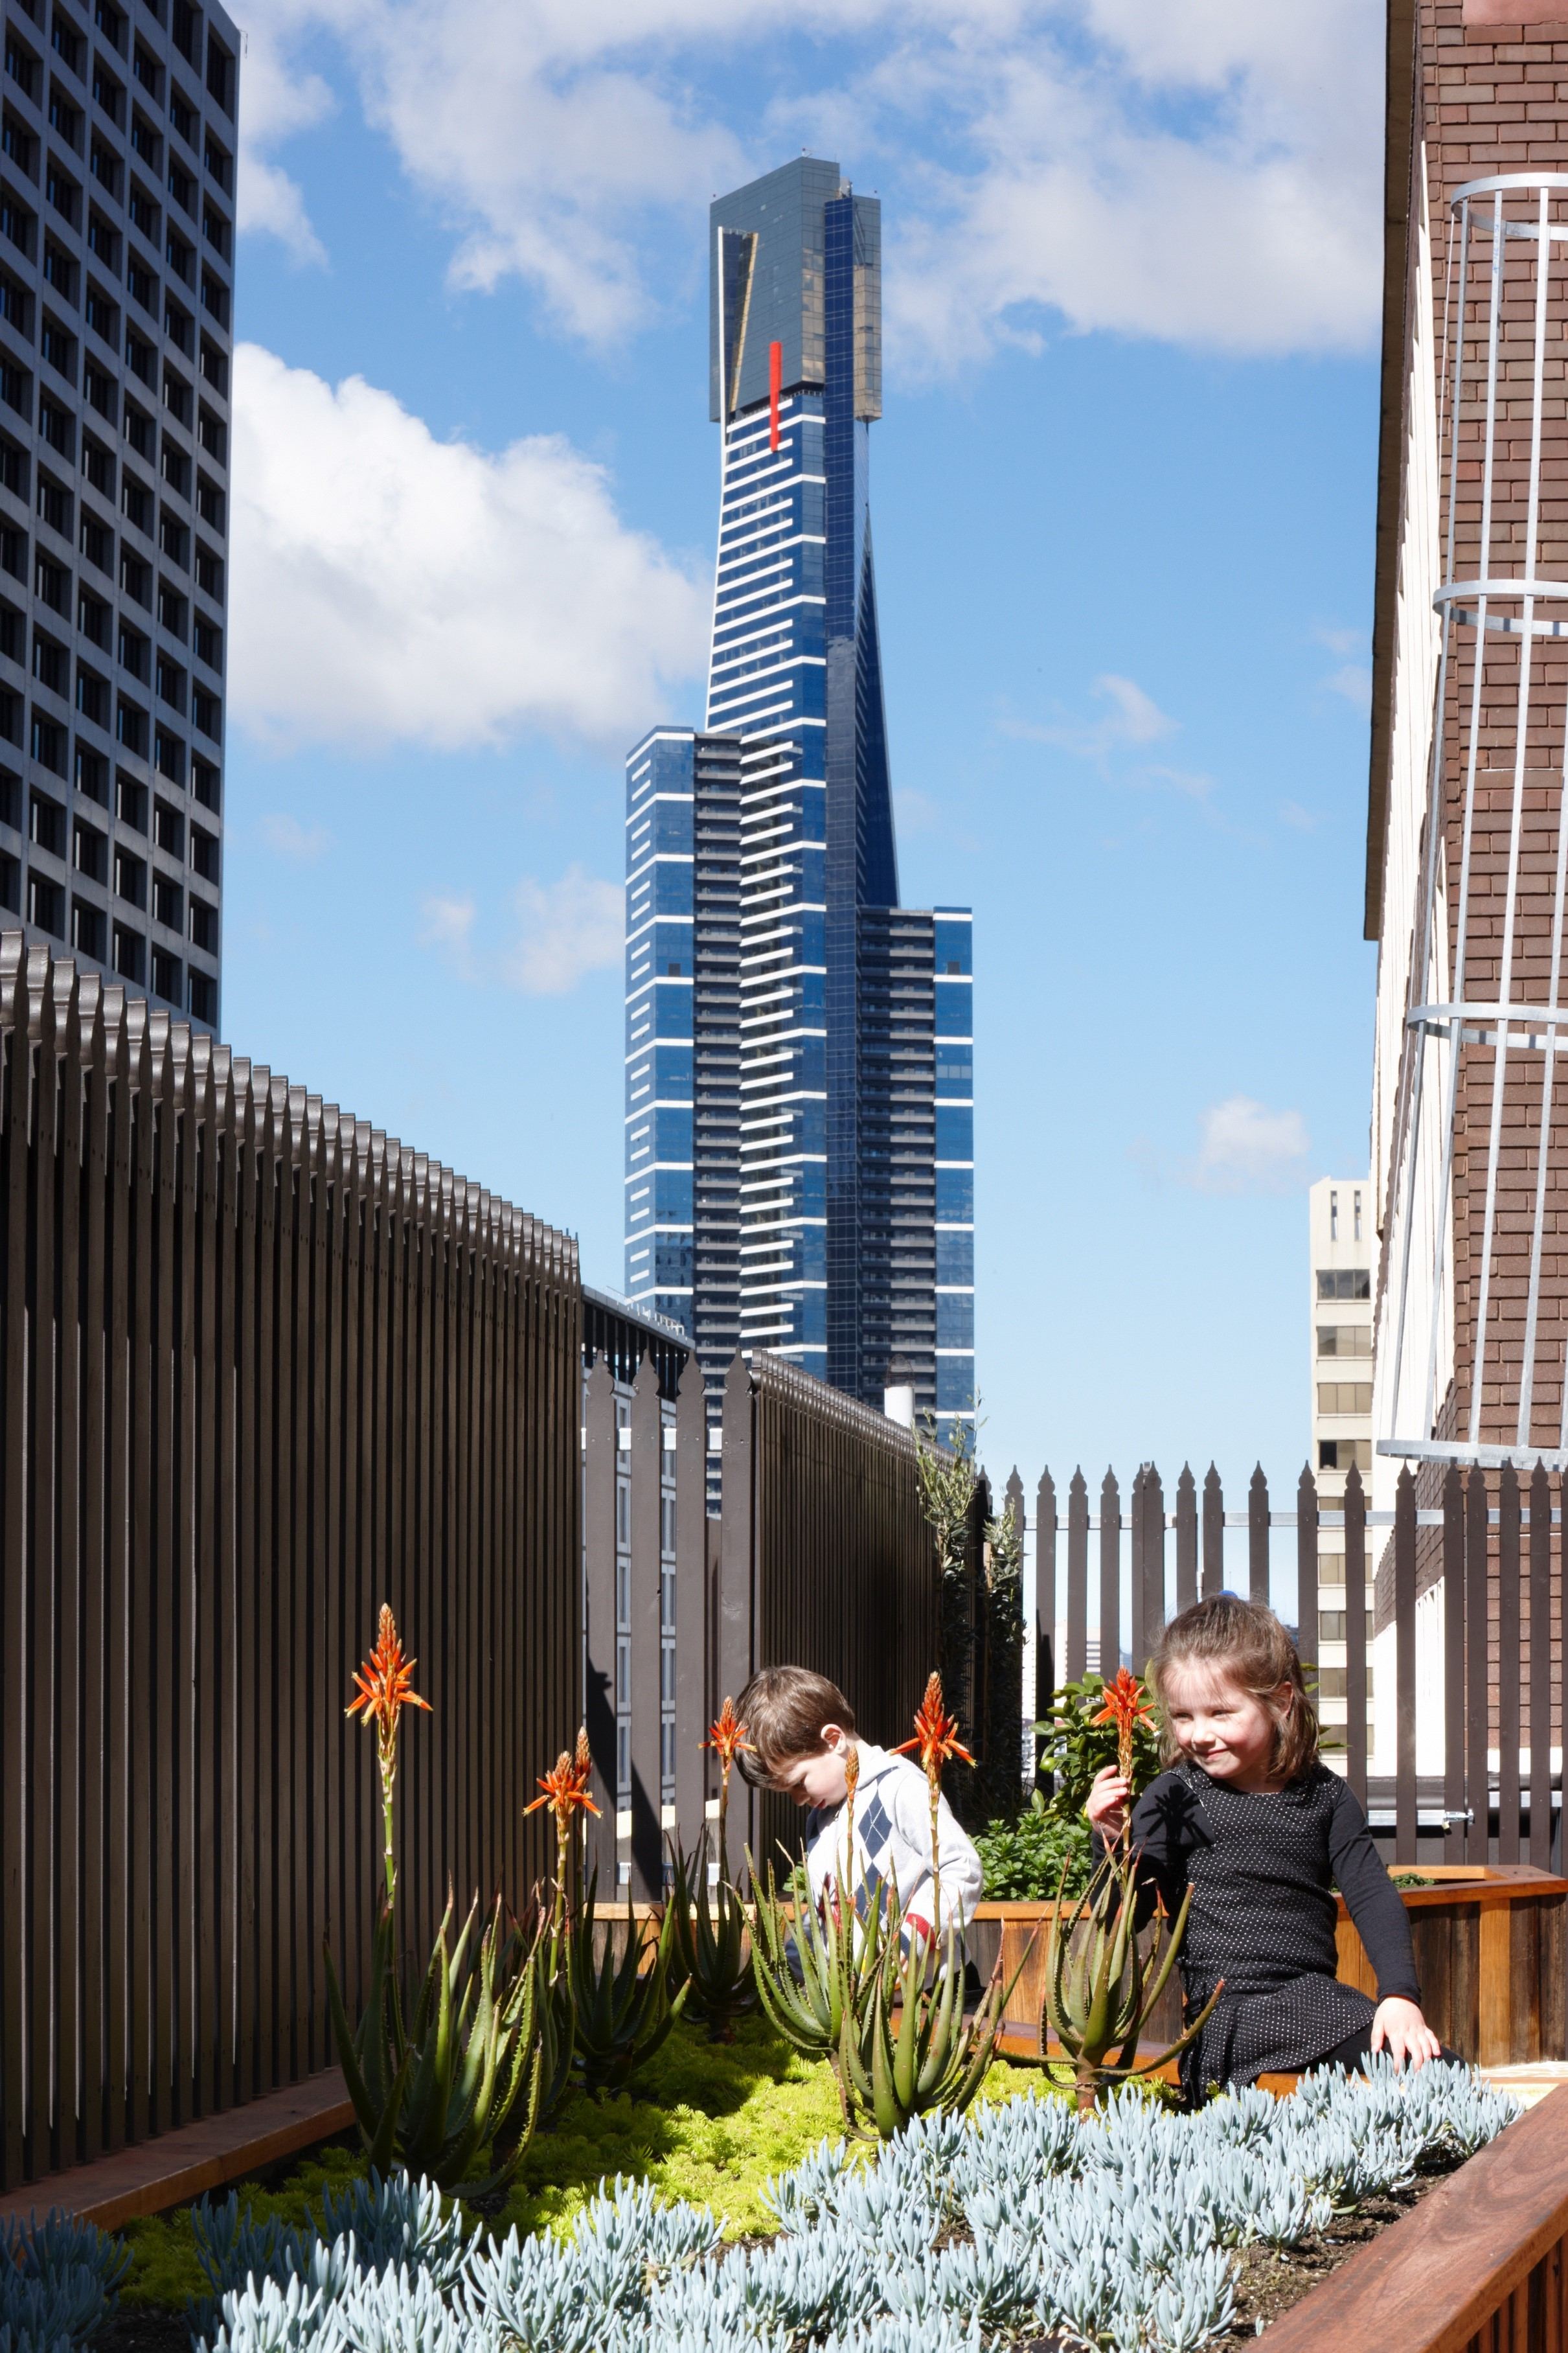 Gallery Of Growing Up Green Rooftop By Bent Architecture Local Australian Architecture & Design Melbourne, Vic Image 5